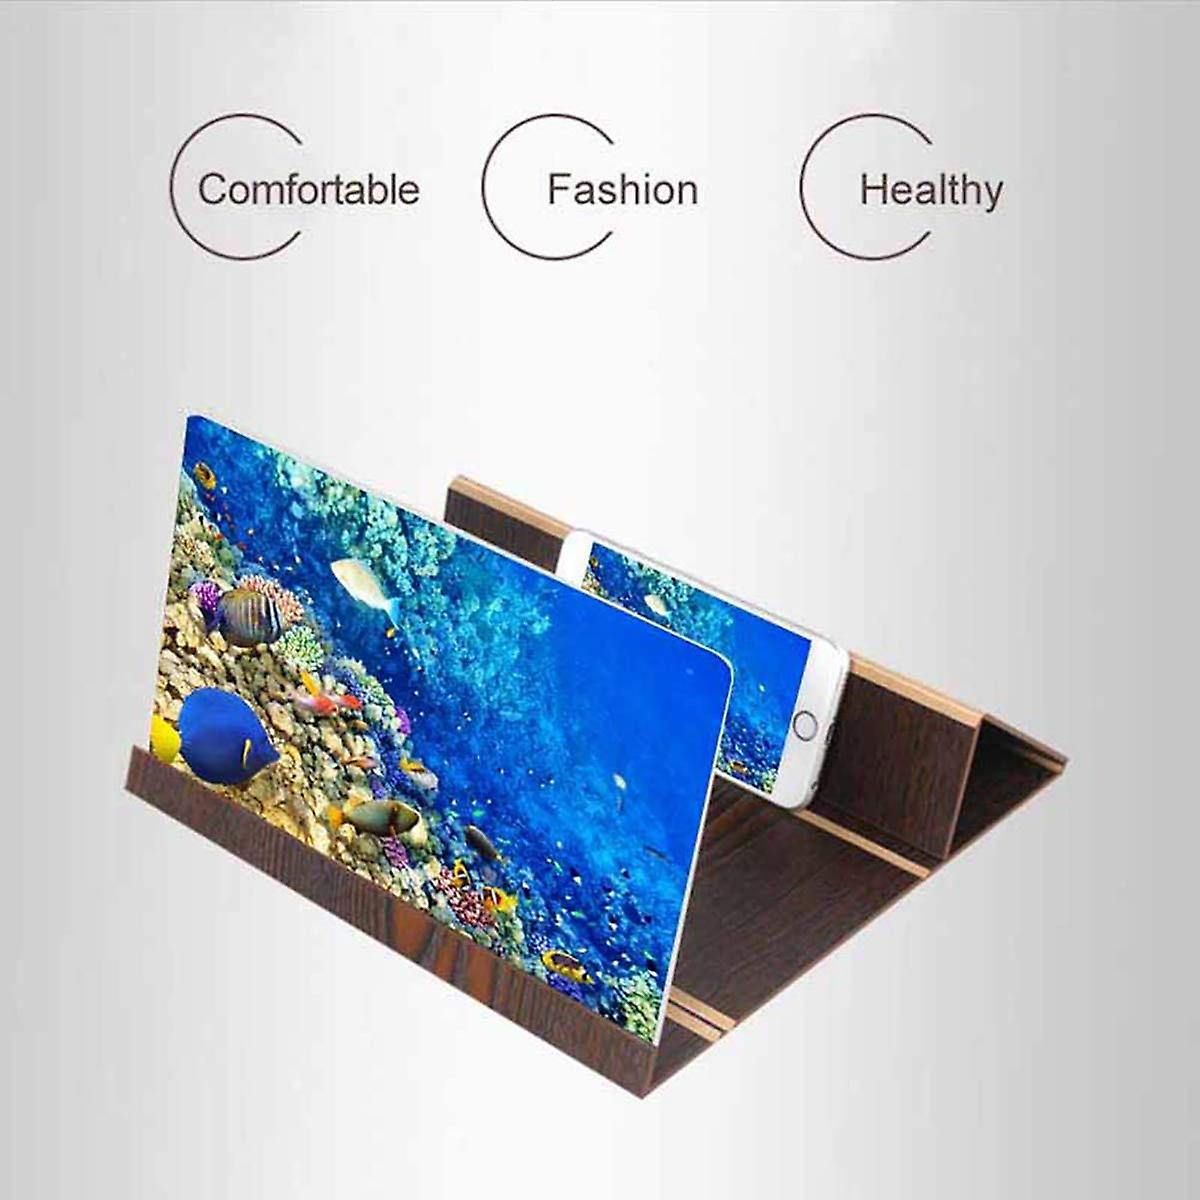 3D Phone Screen Magnifier Amplifier Foldable Wooden Stand Holder For Archos 55 Helium 4 Seasons 5.5